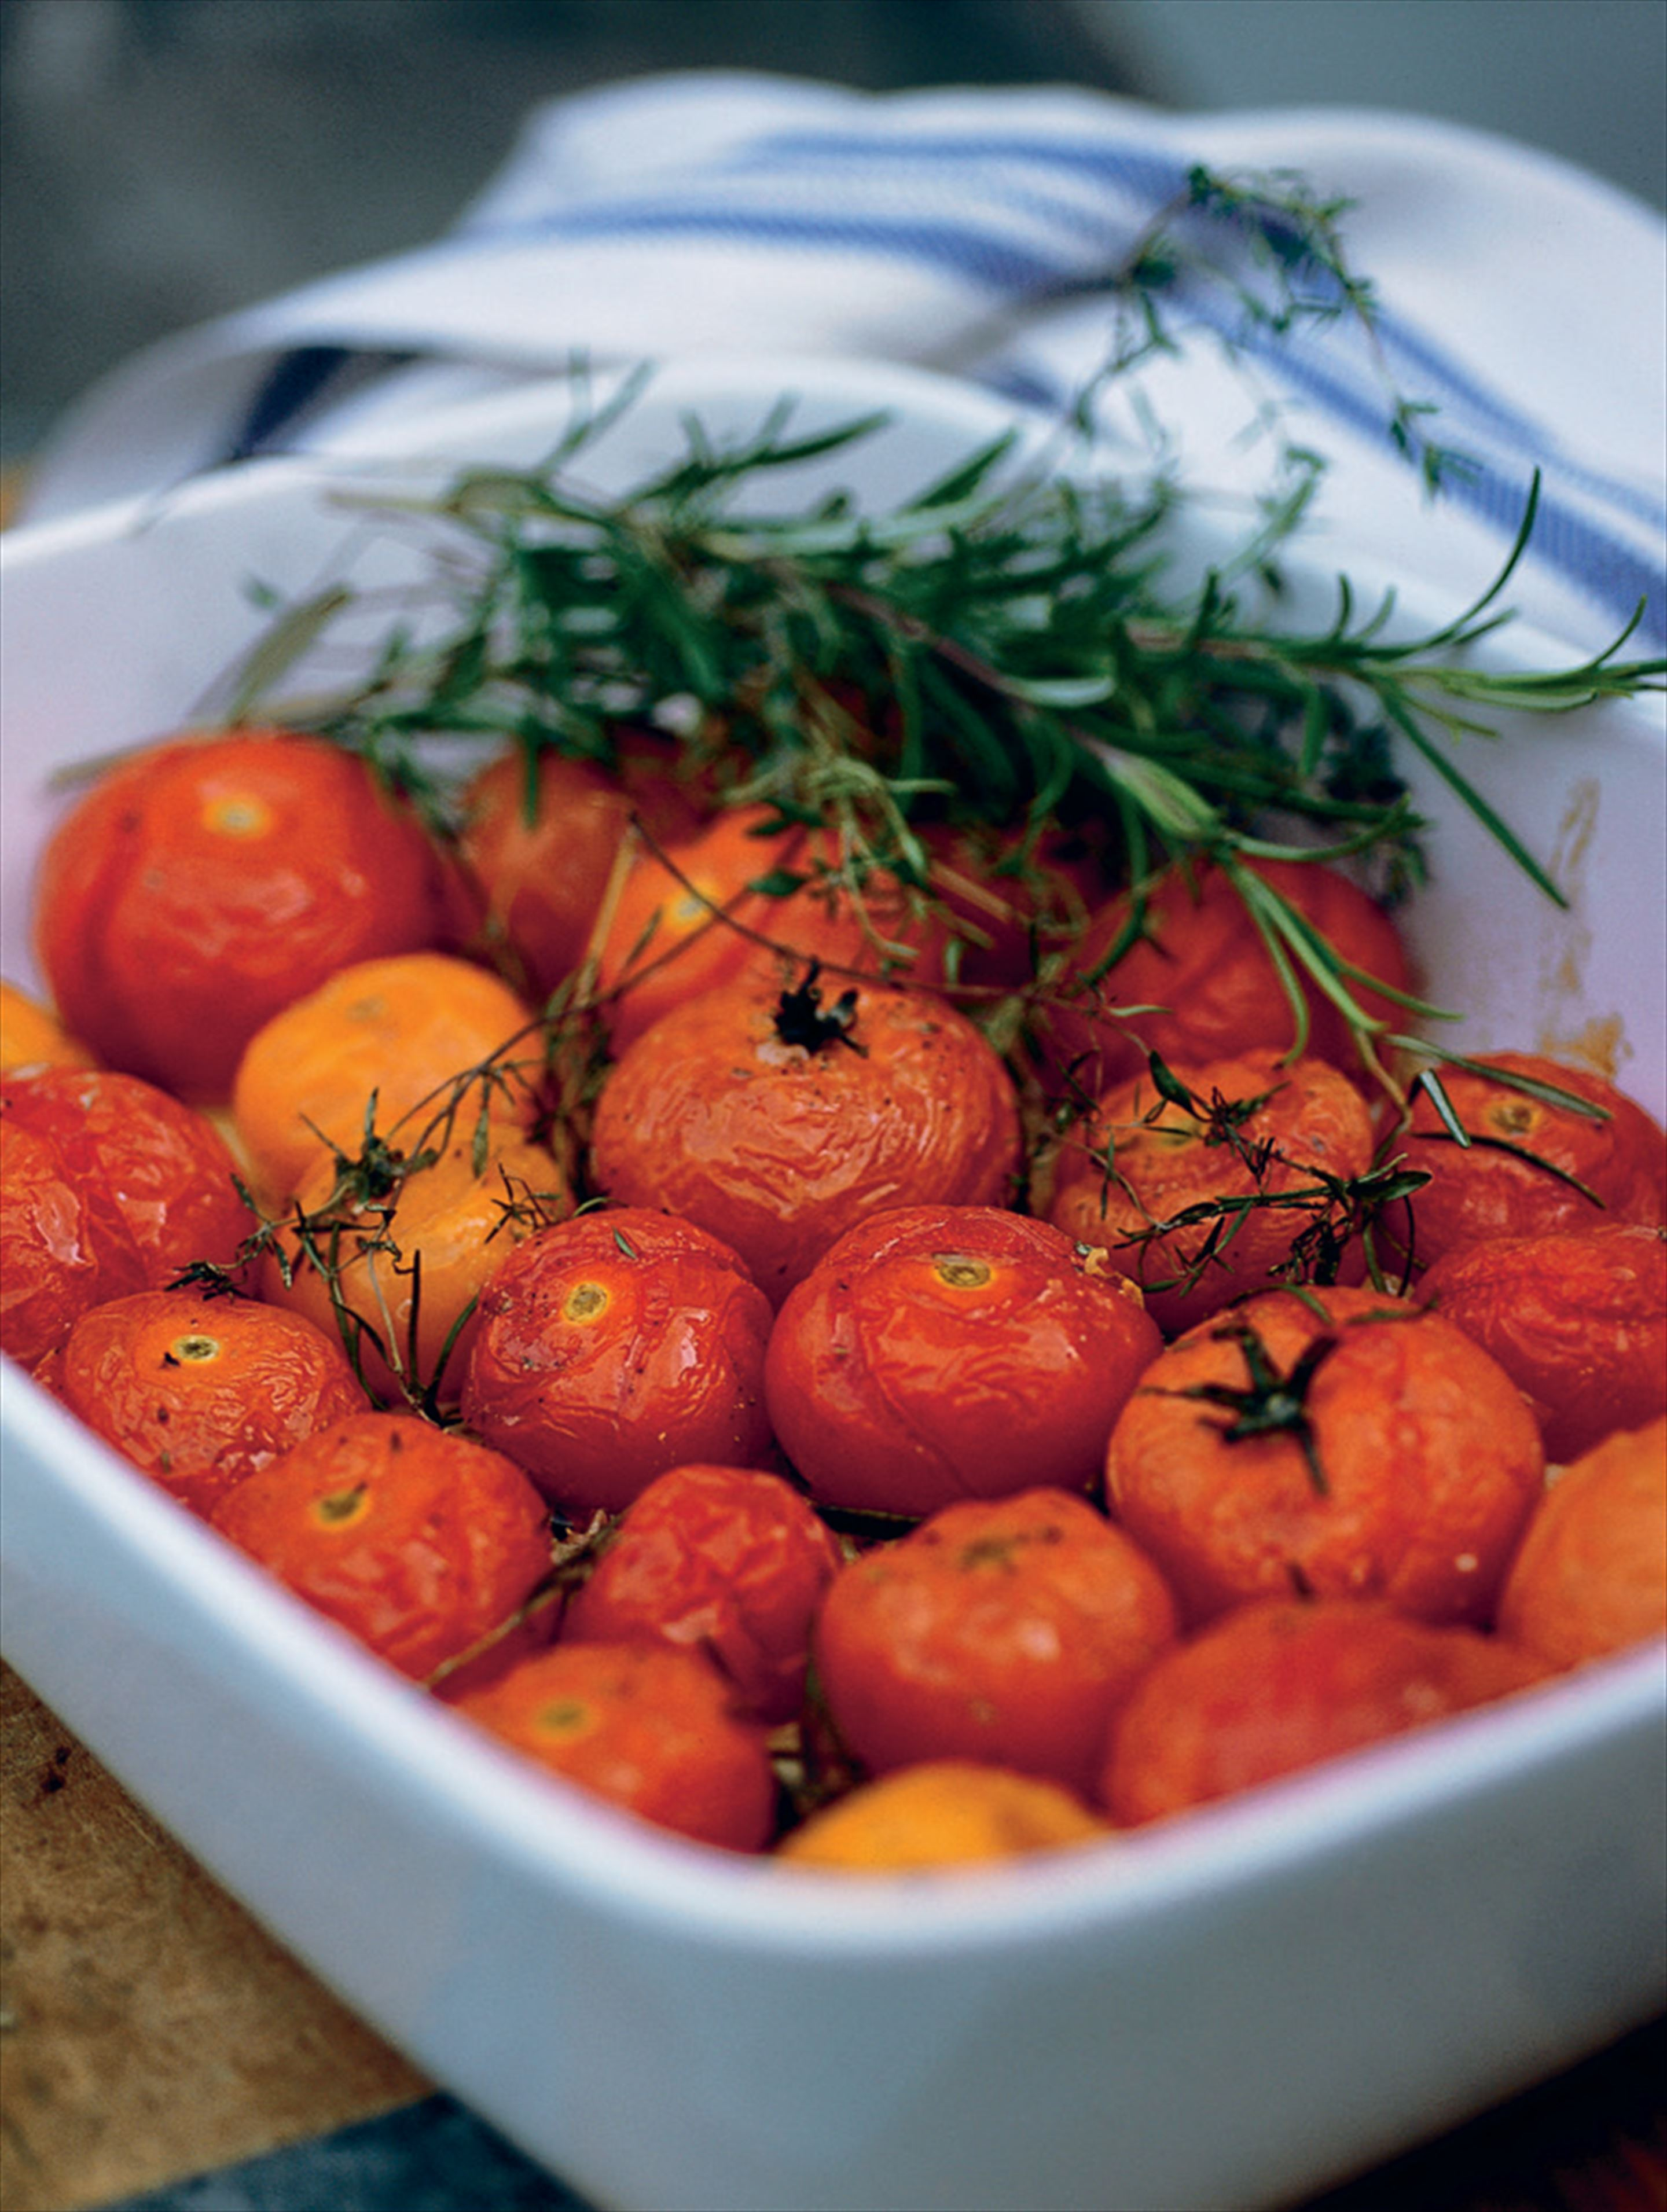 Slow-roasted cherry tomatoes with herbs